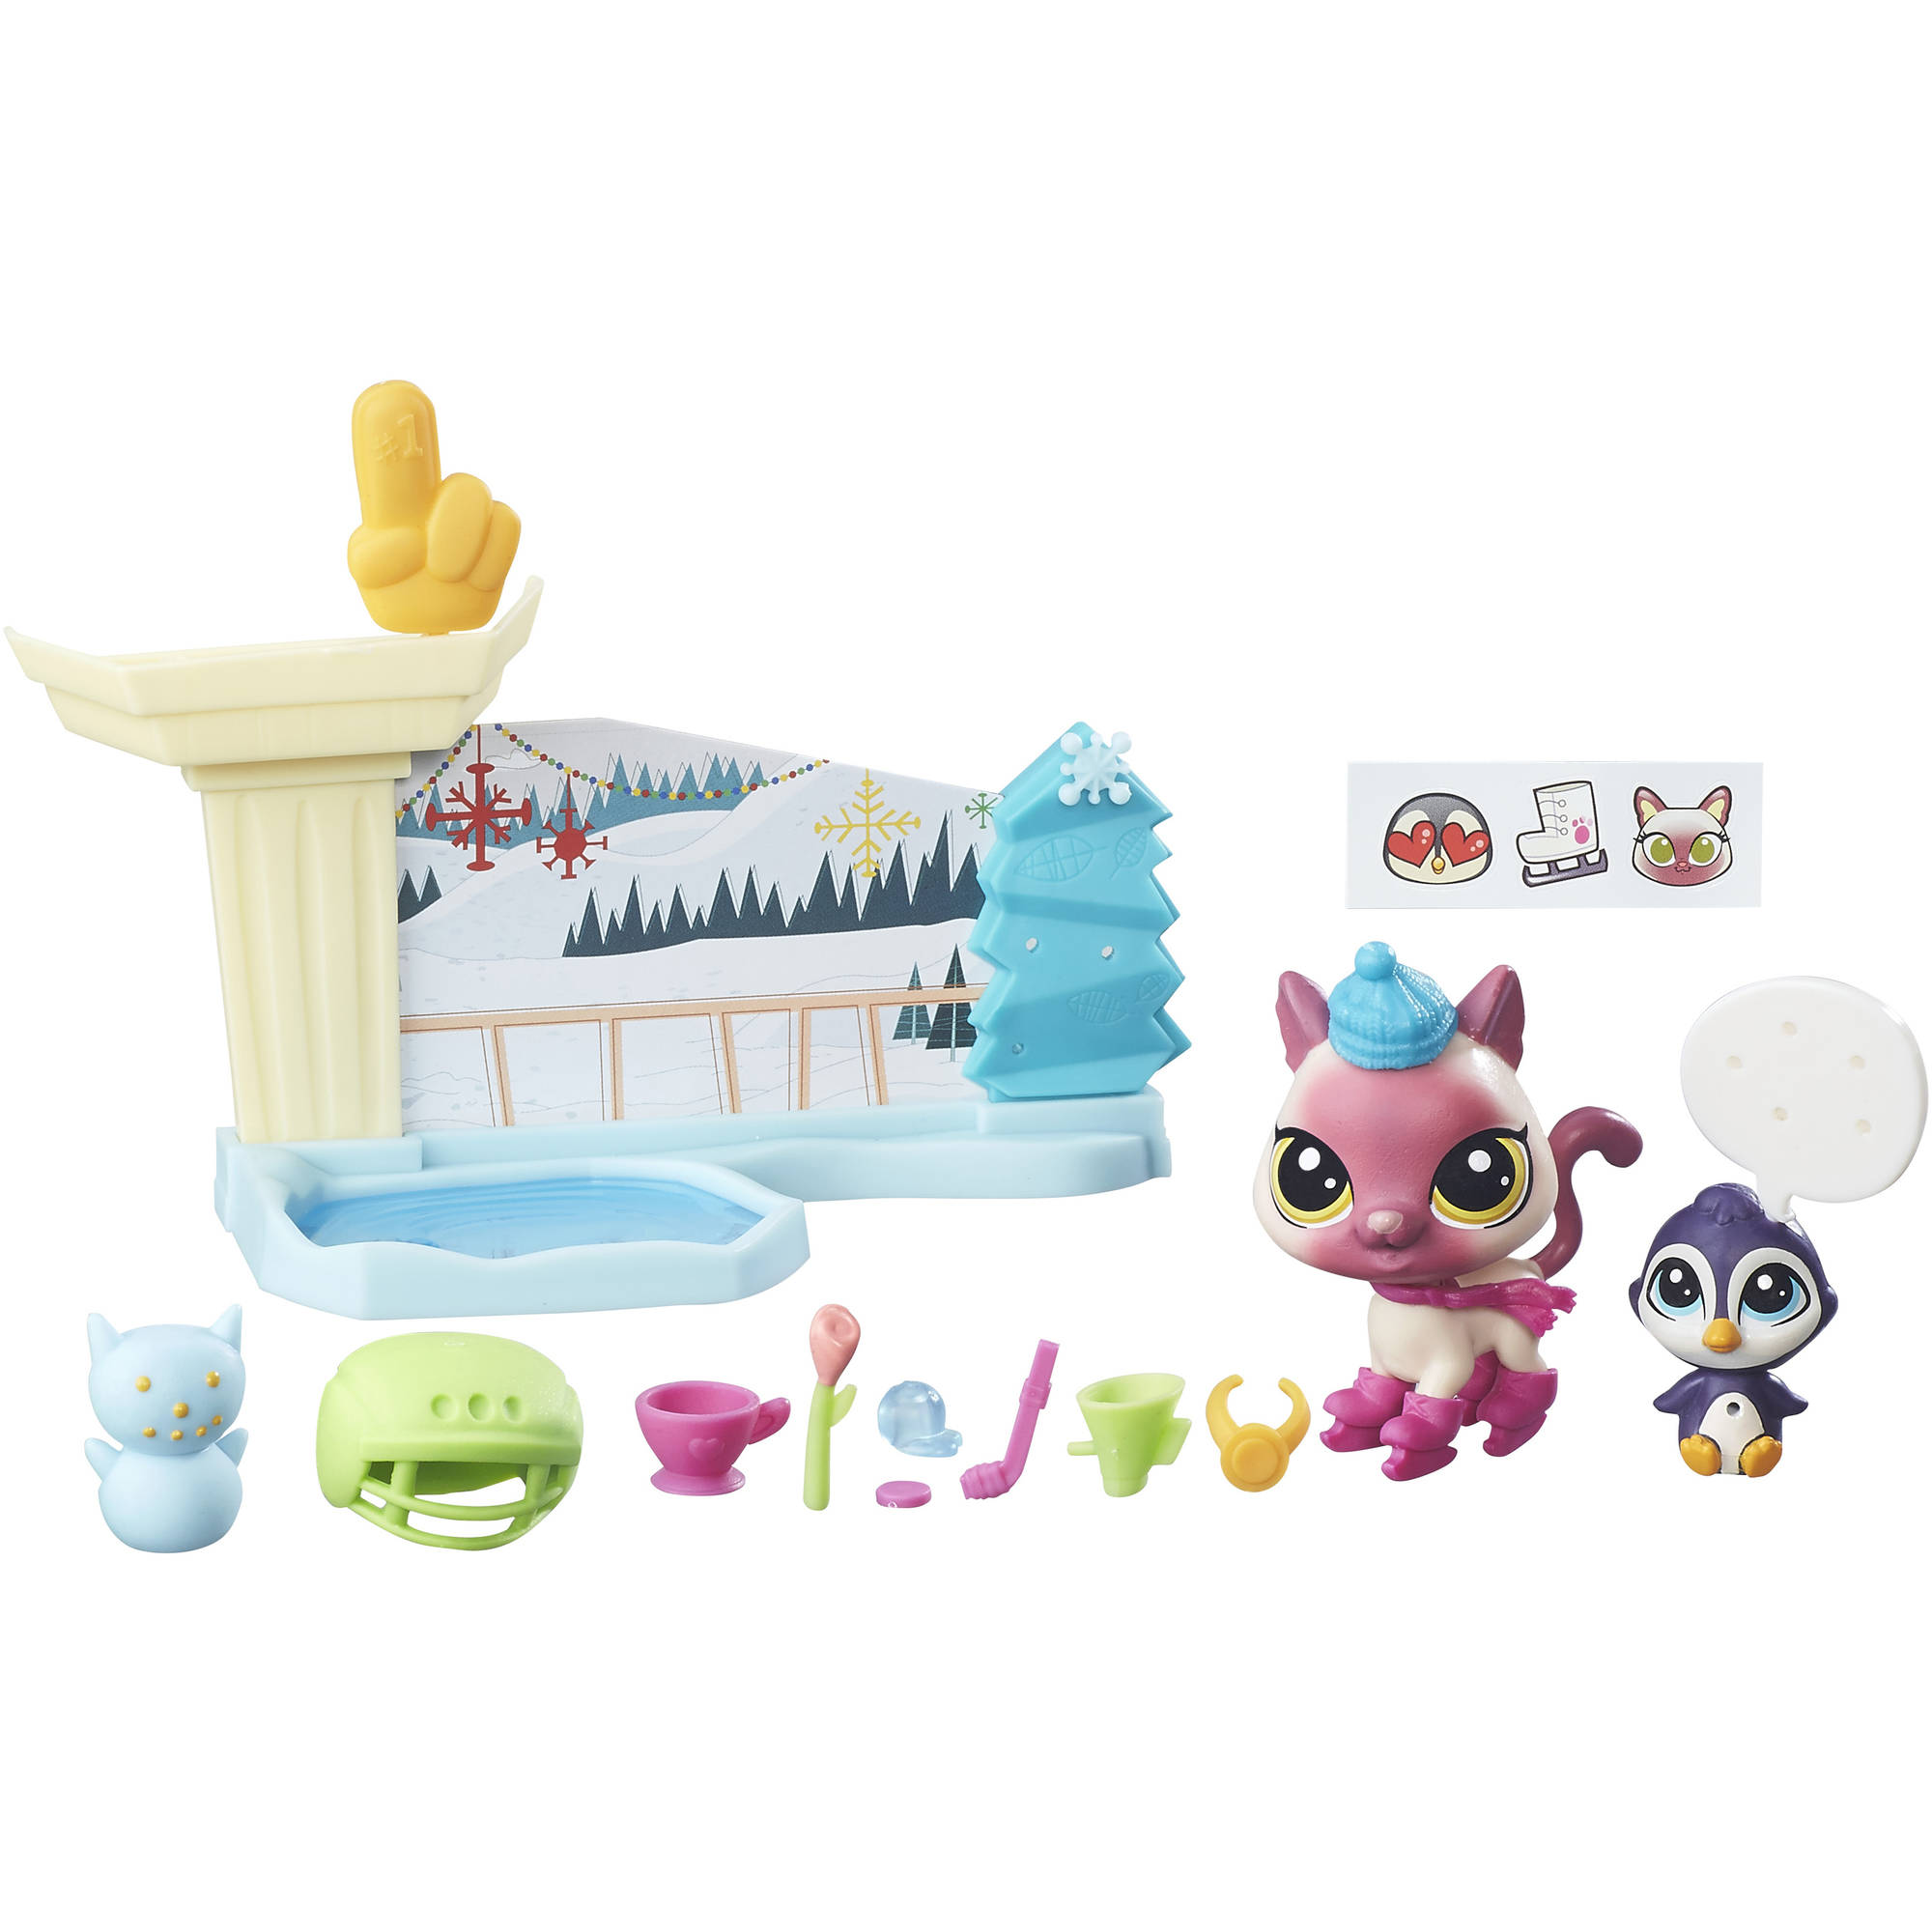 Littlest Pet Shop Ice Skating Playset